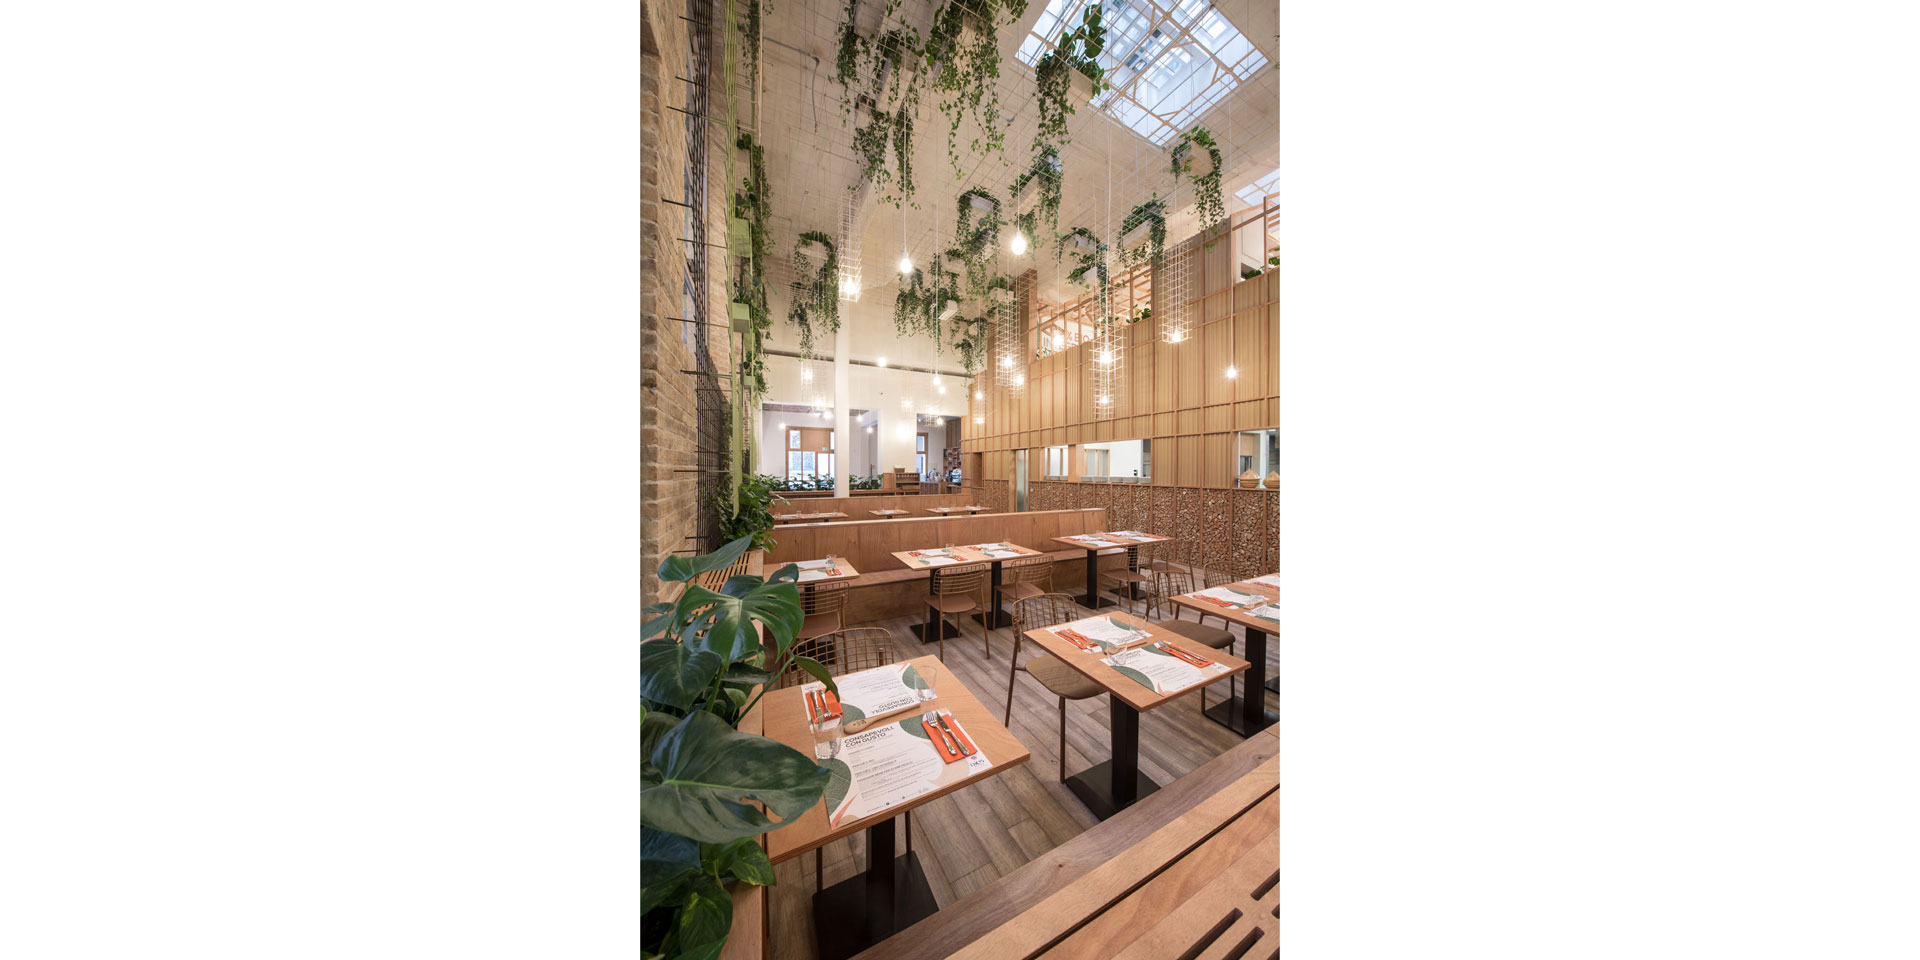 archinow_BOB_new-restaurant_14